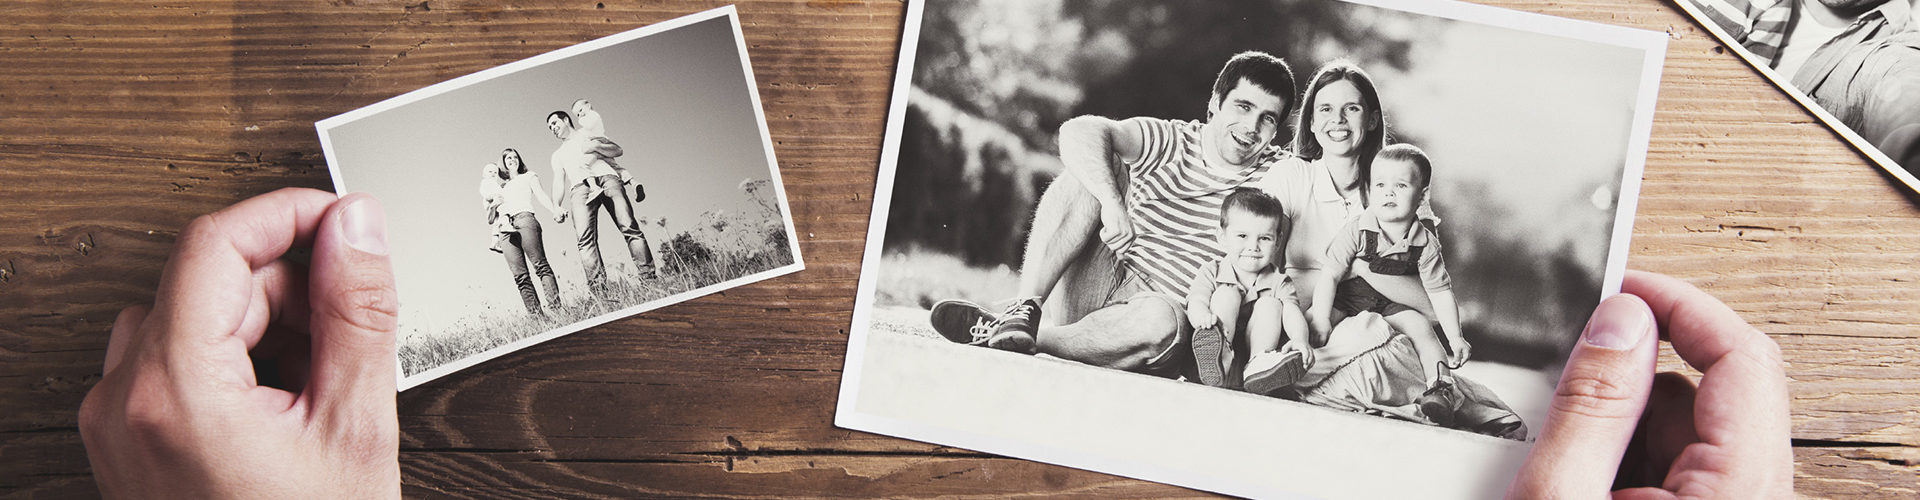 How to Organize Printed Photographs